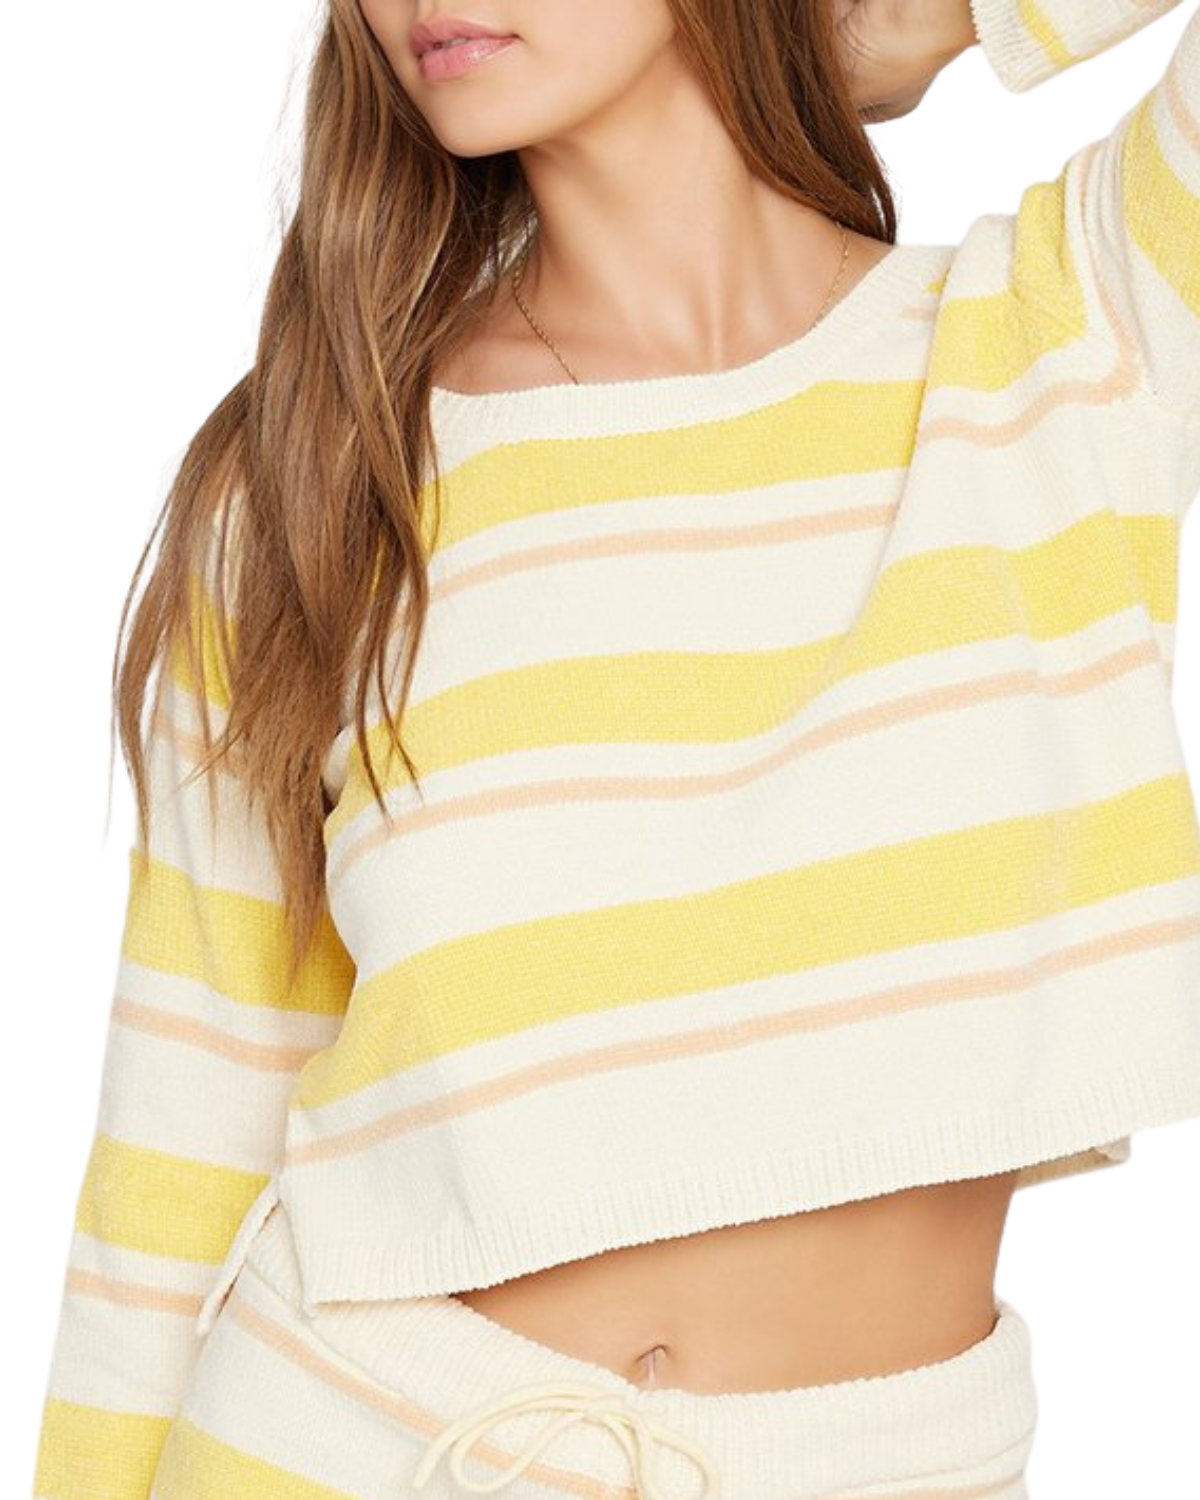 Sun Seeker Sweater - Sunshine Stripe